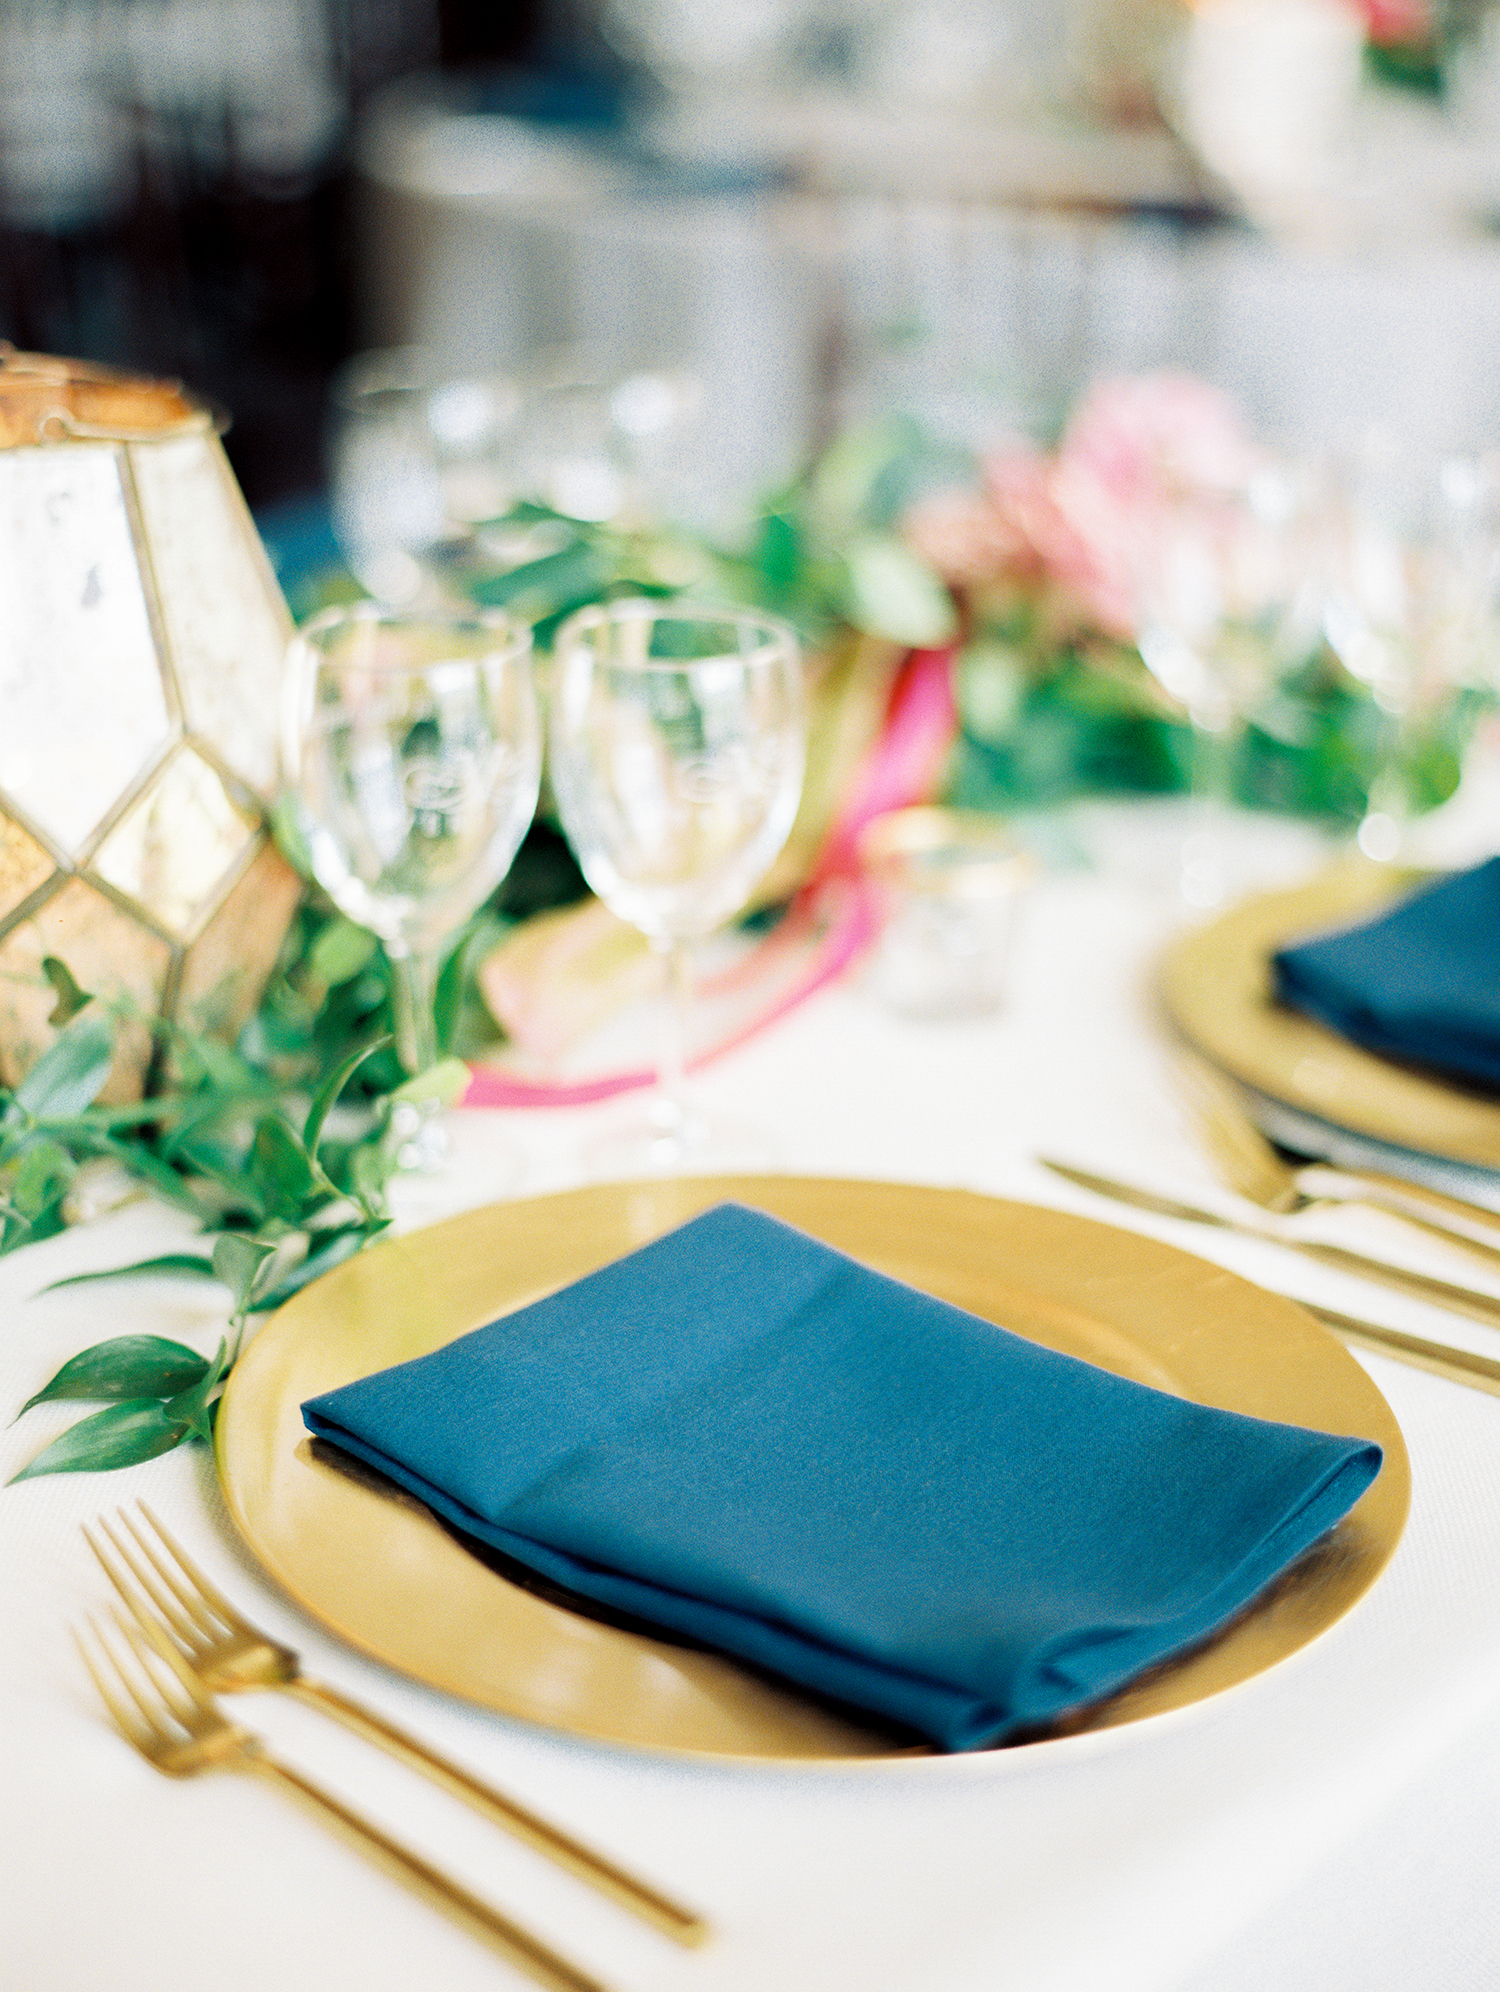 dawn rich wedding place setting blue napkin on gold charger